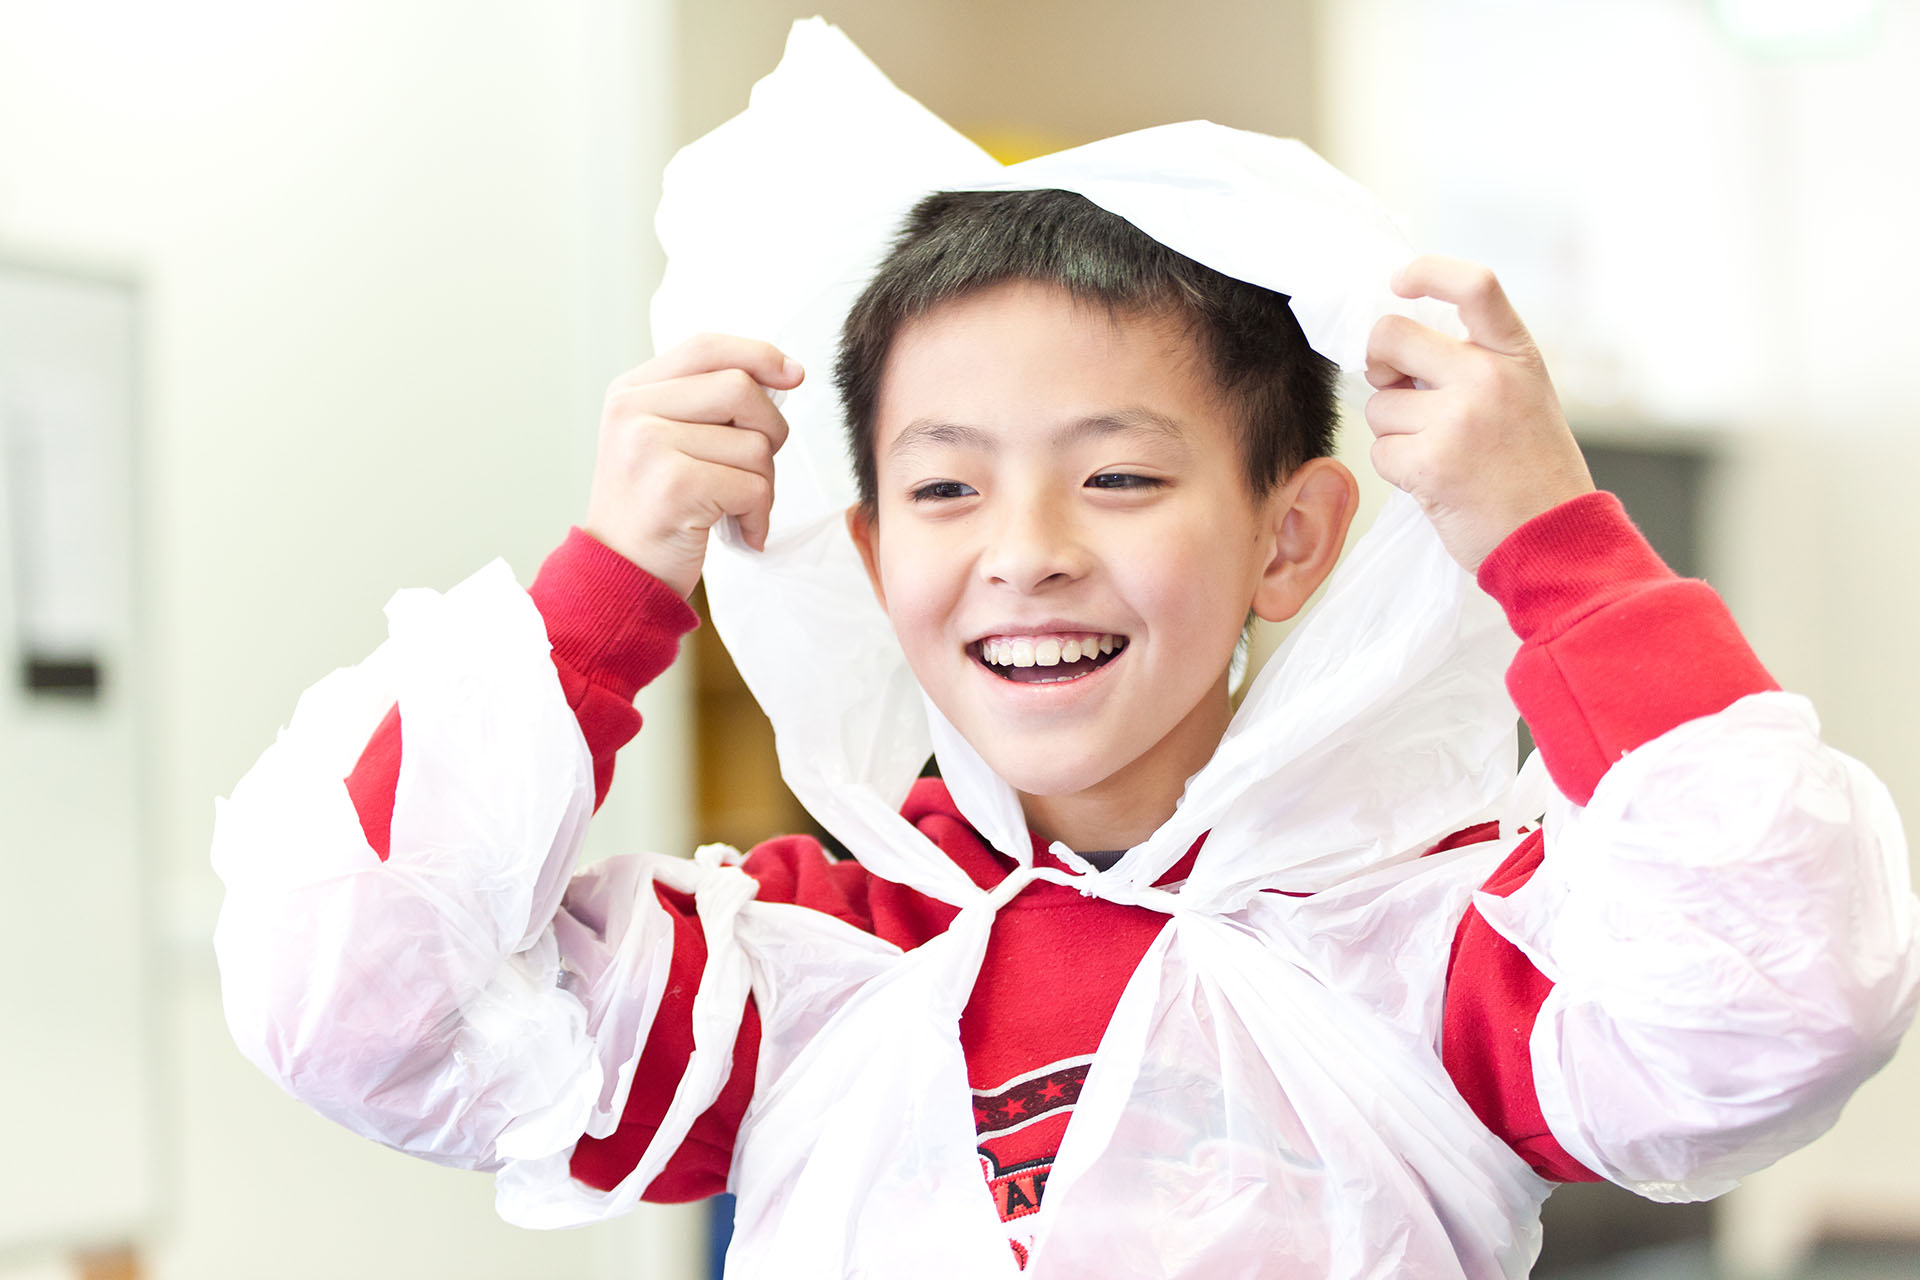 Smiling boy in protective cape in a painting class